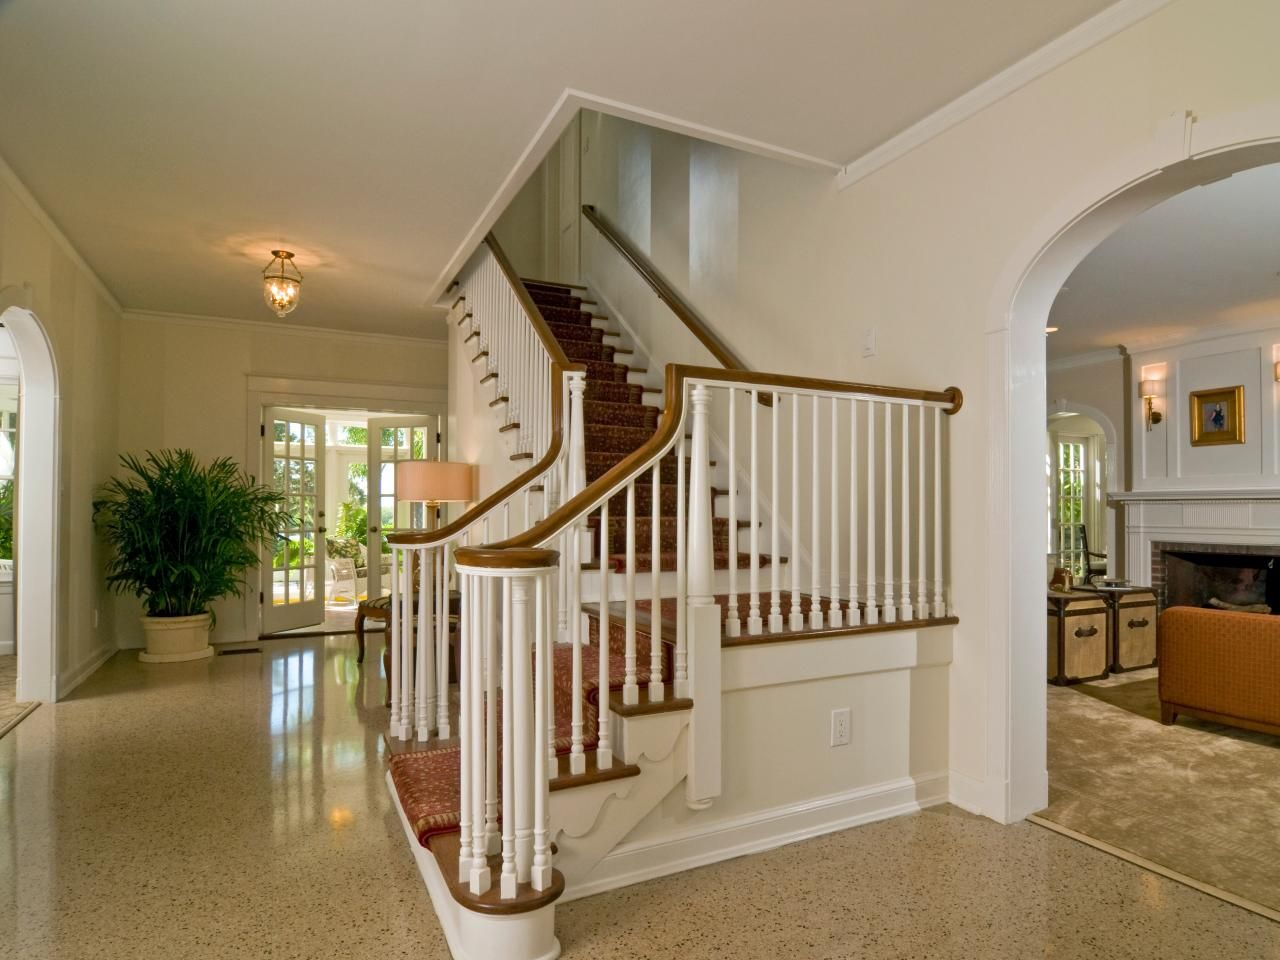 Entry Foyer Runner : This traditional foyer features terrazzo flooring and an elegant